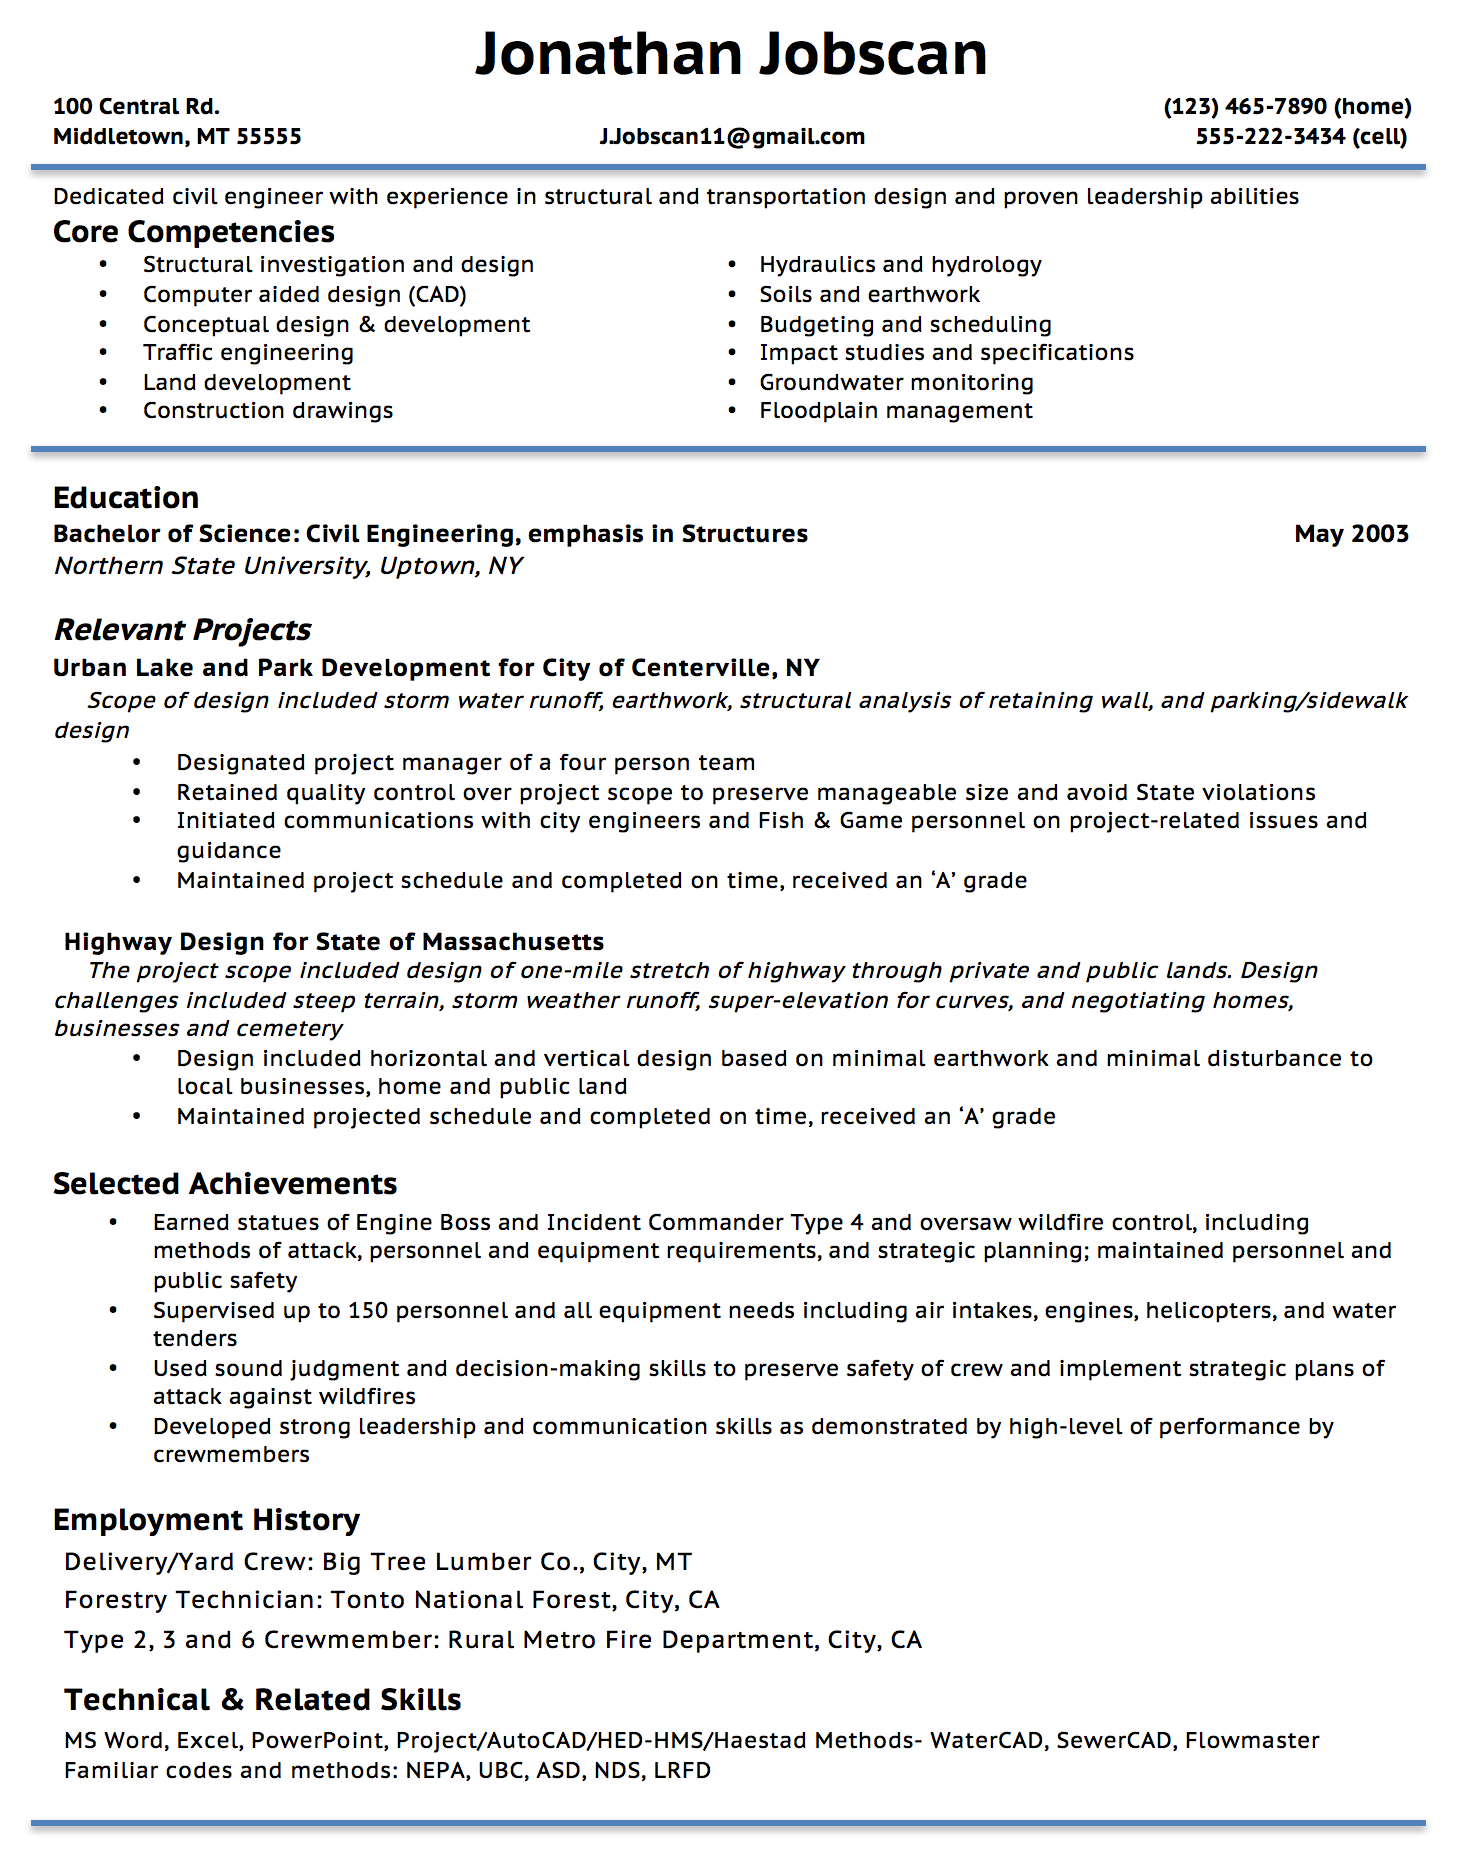 Opposenewapstandardsus  Marvelous Resume Writing Guide  Jobscan With Lovely Example Of A Functional Resume Format With Awesome Resume Headlines Also Best Skills To Put On Resume In Addition Relevant Skills For Resume And How To Make Resume Free As Well As Pharmacy Technician Resume Objective Additionally Accounting Student Resume From Jobscanco With Opposenewapstandardsus  Lovely Resume Writing Guide  Jobscan With Awesome Example Of A Functional Resume Format And Marvelous Resume Headlines Also Best Skills To Put On Resume In Addition Relevant Skills For Resume From Jobscanco